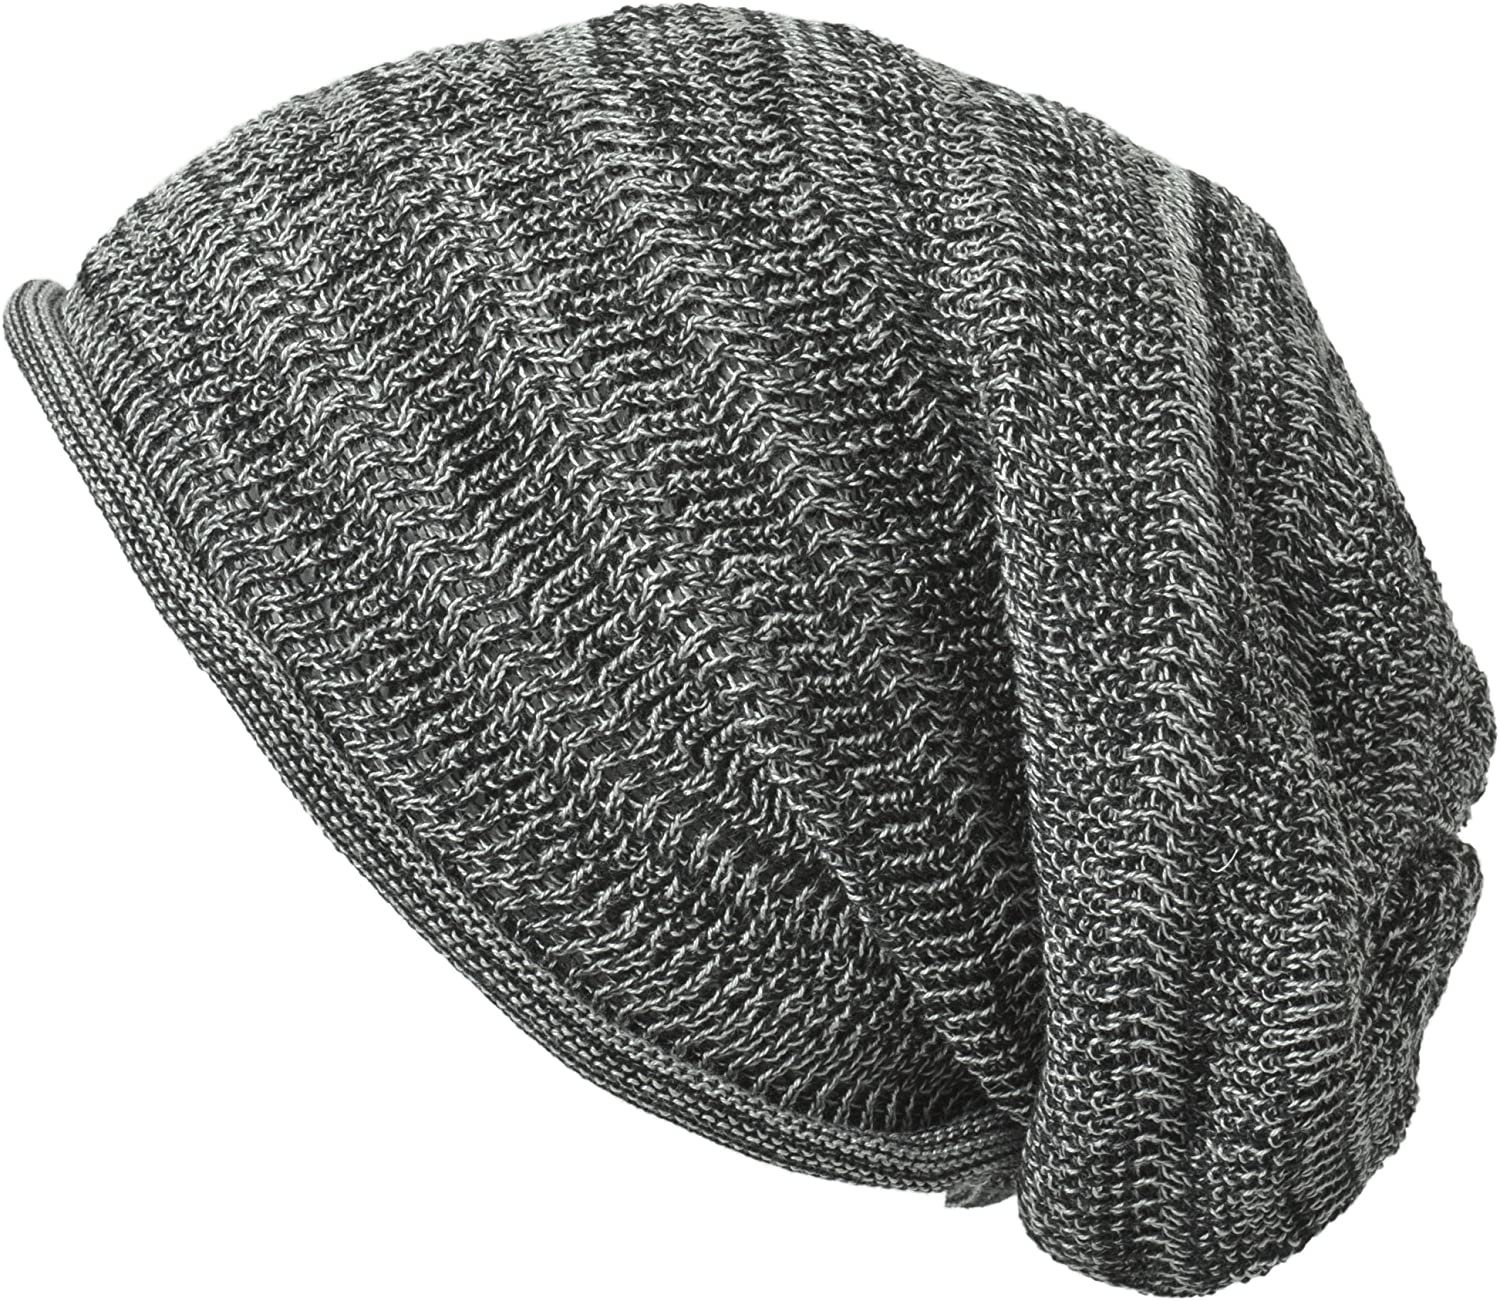 Casualbox Mens Summer Sports Knit Max 49% OFF - Womens Sweat Beanie Slouchy Rapid rise